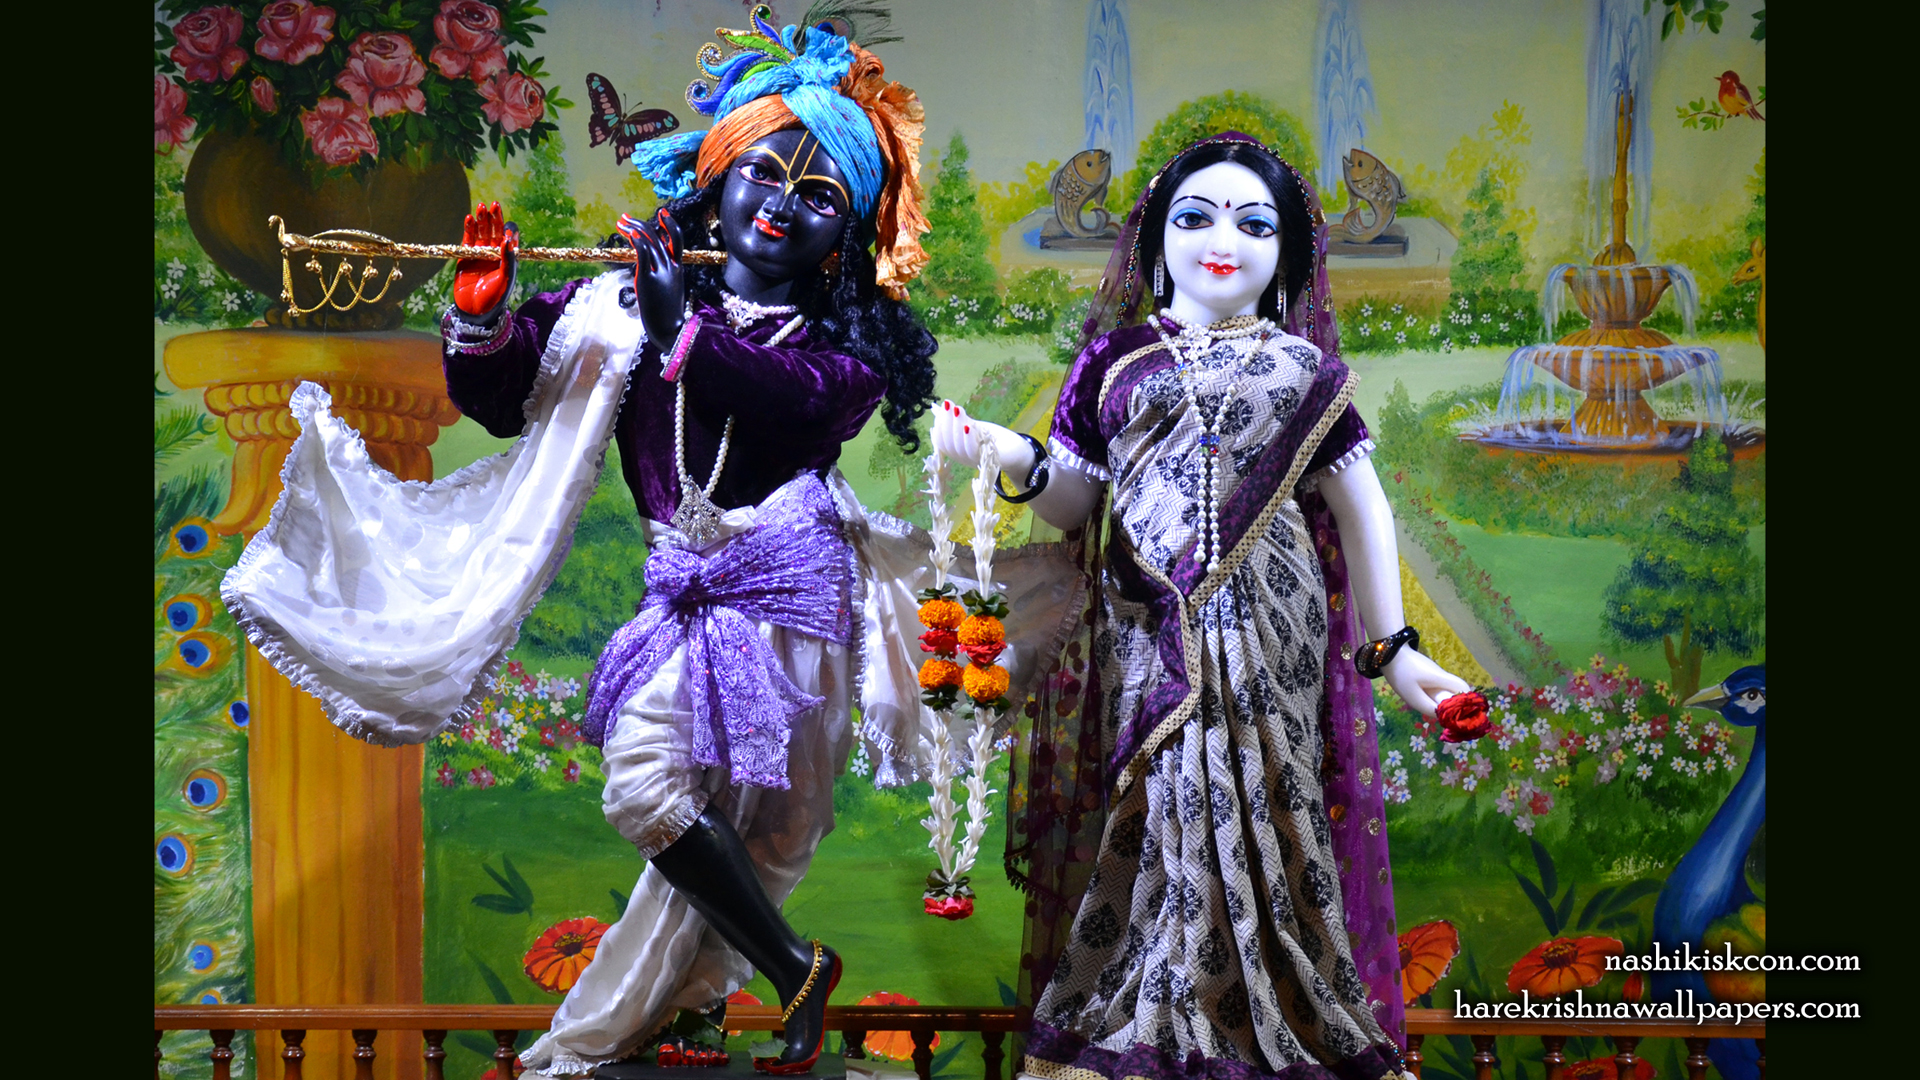 Sri Sri Radha Madan Gopal Wallpaper (014) Size 1920x1080 Download